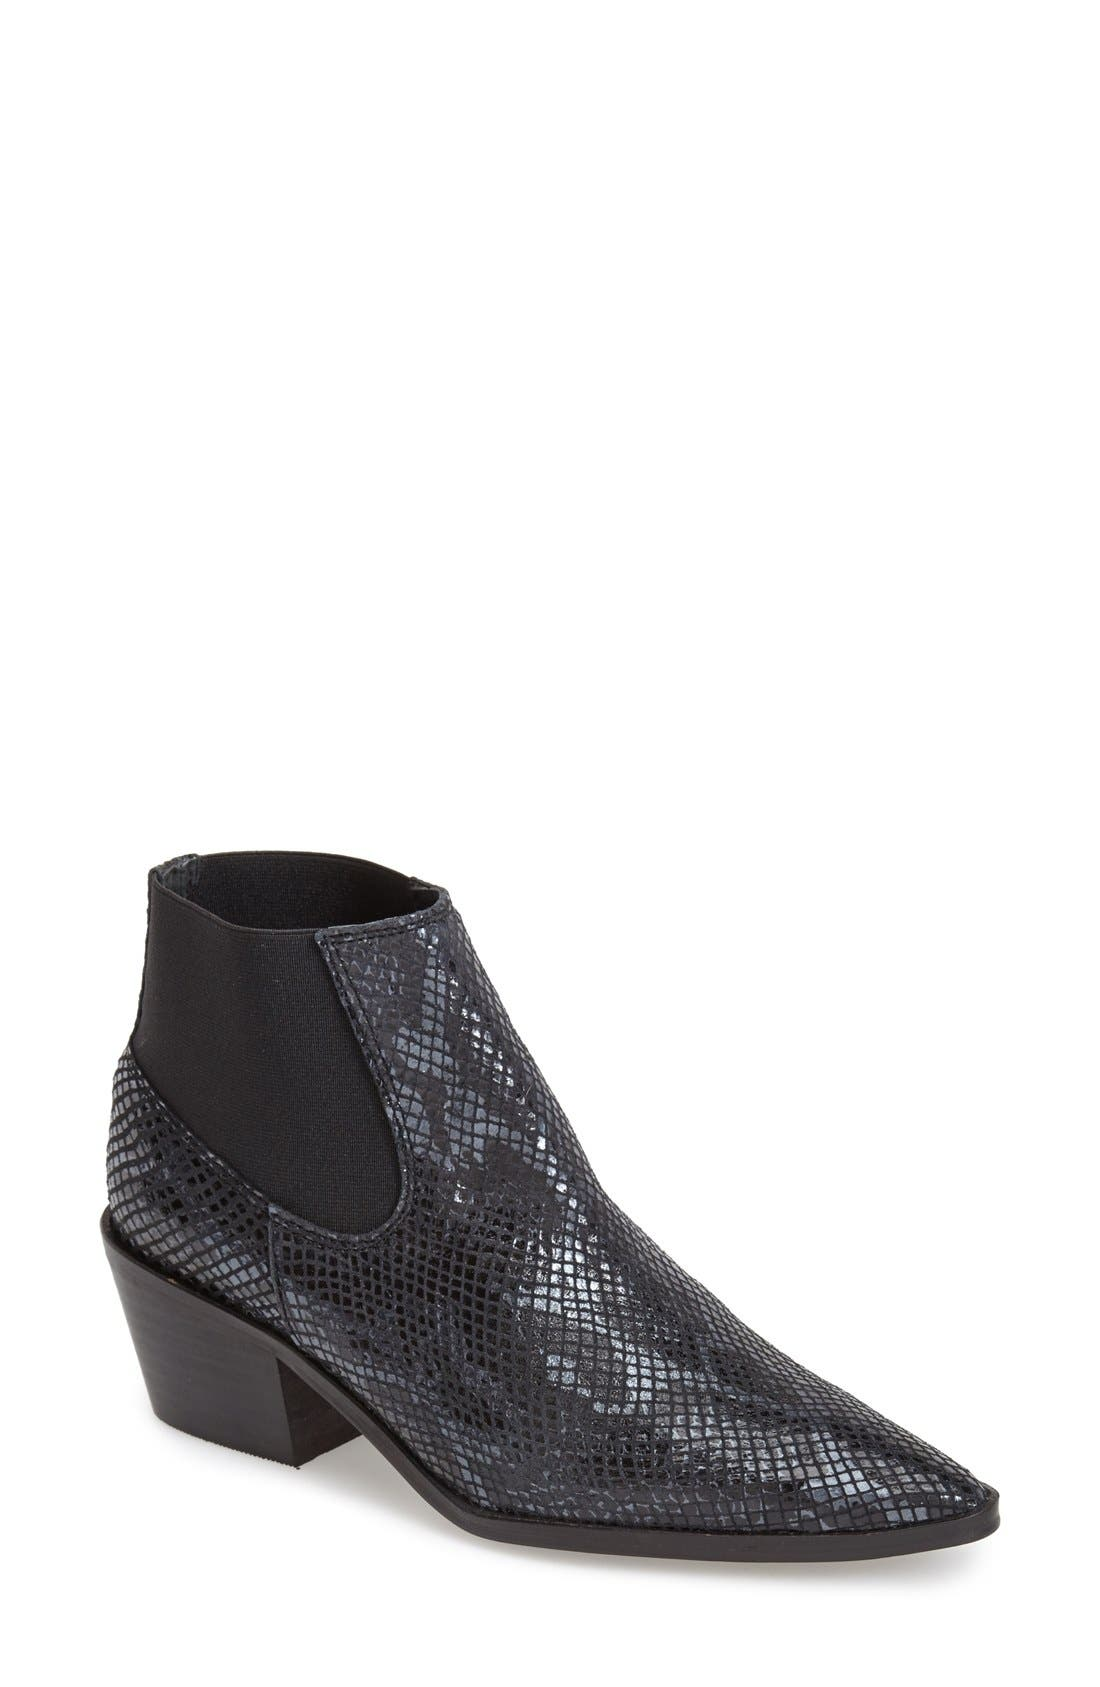 Main Image - Topshop 'Marr' Pointy Toe Chelsea Boot (Women)